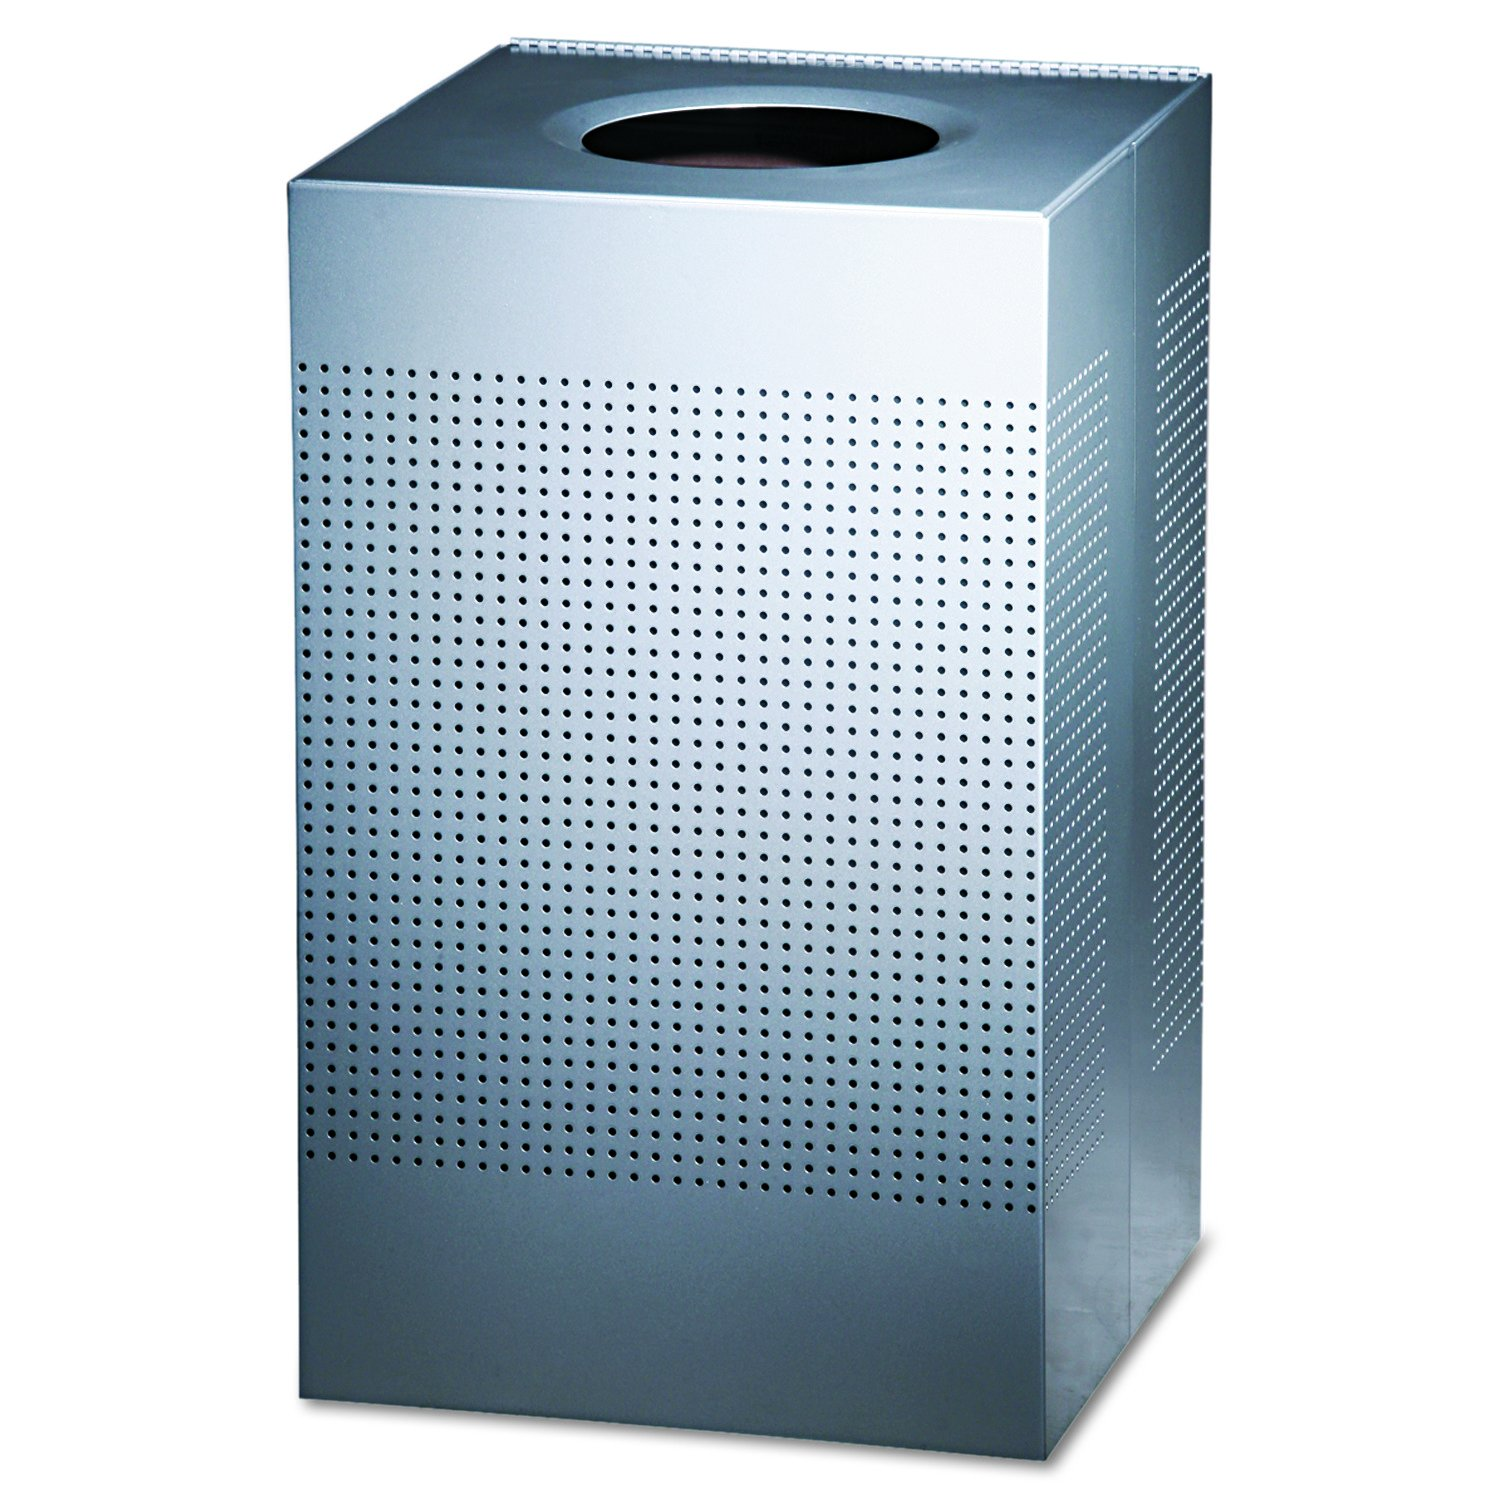 CDM product Rubbermaid Commercial SC18EPLSM Designer Line Silhouettes Receptacle, Steel, 29gal, Silver Metallic big image